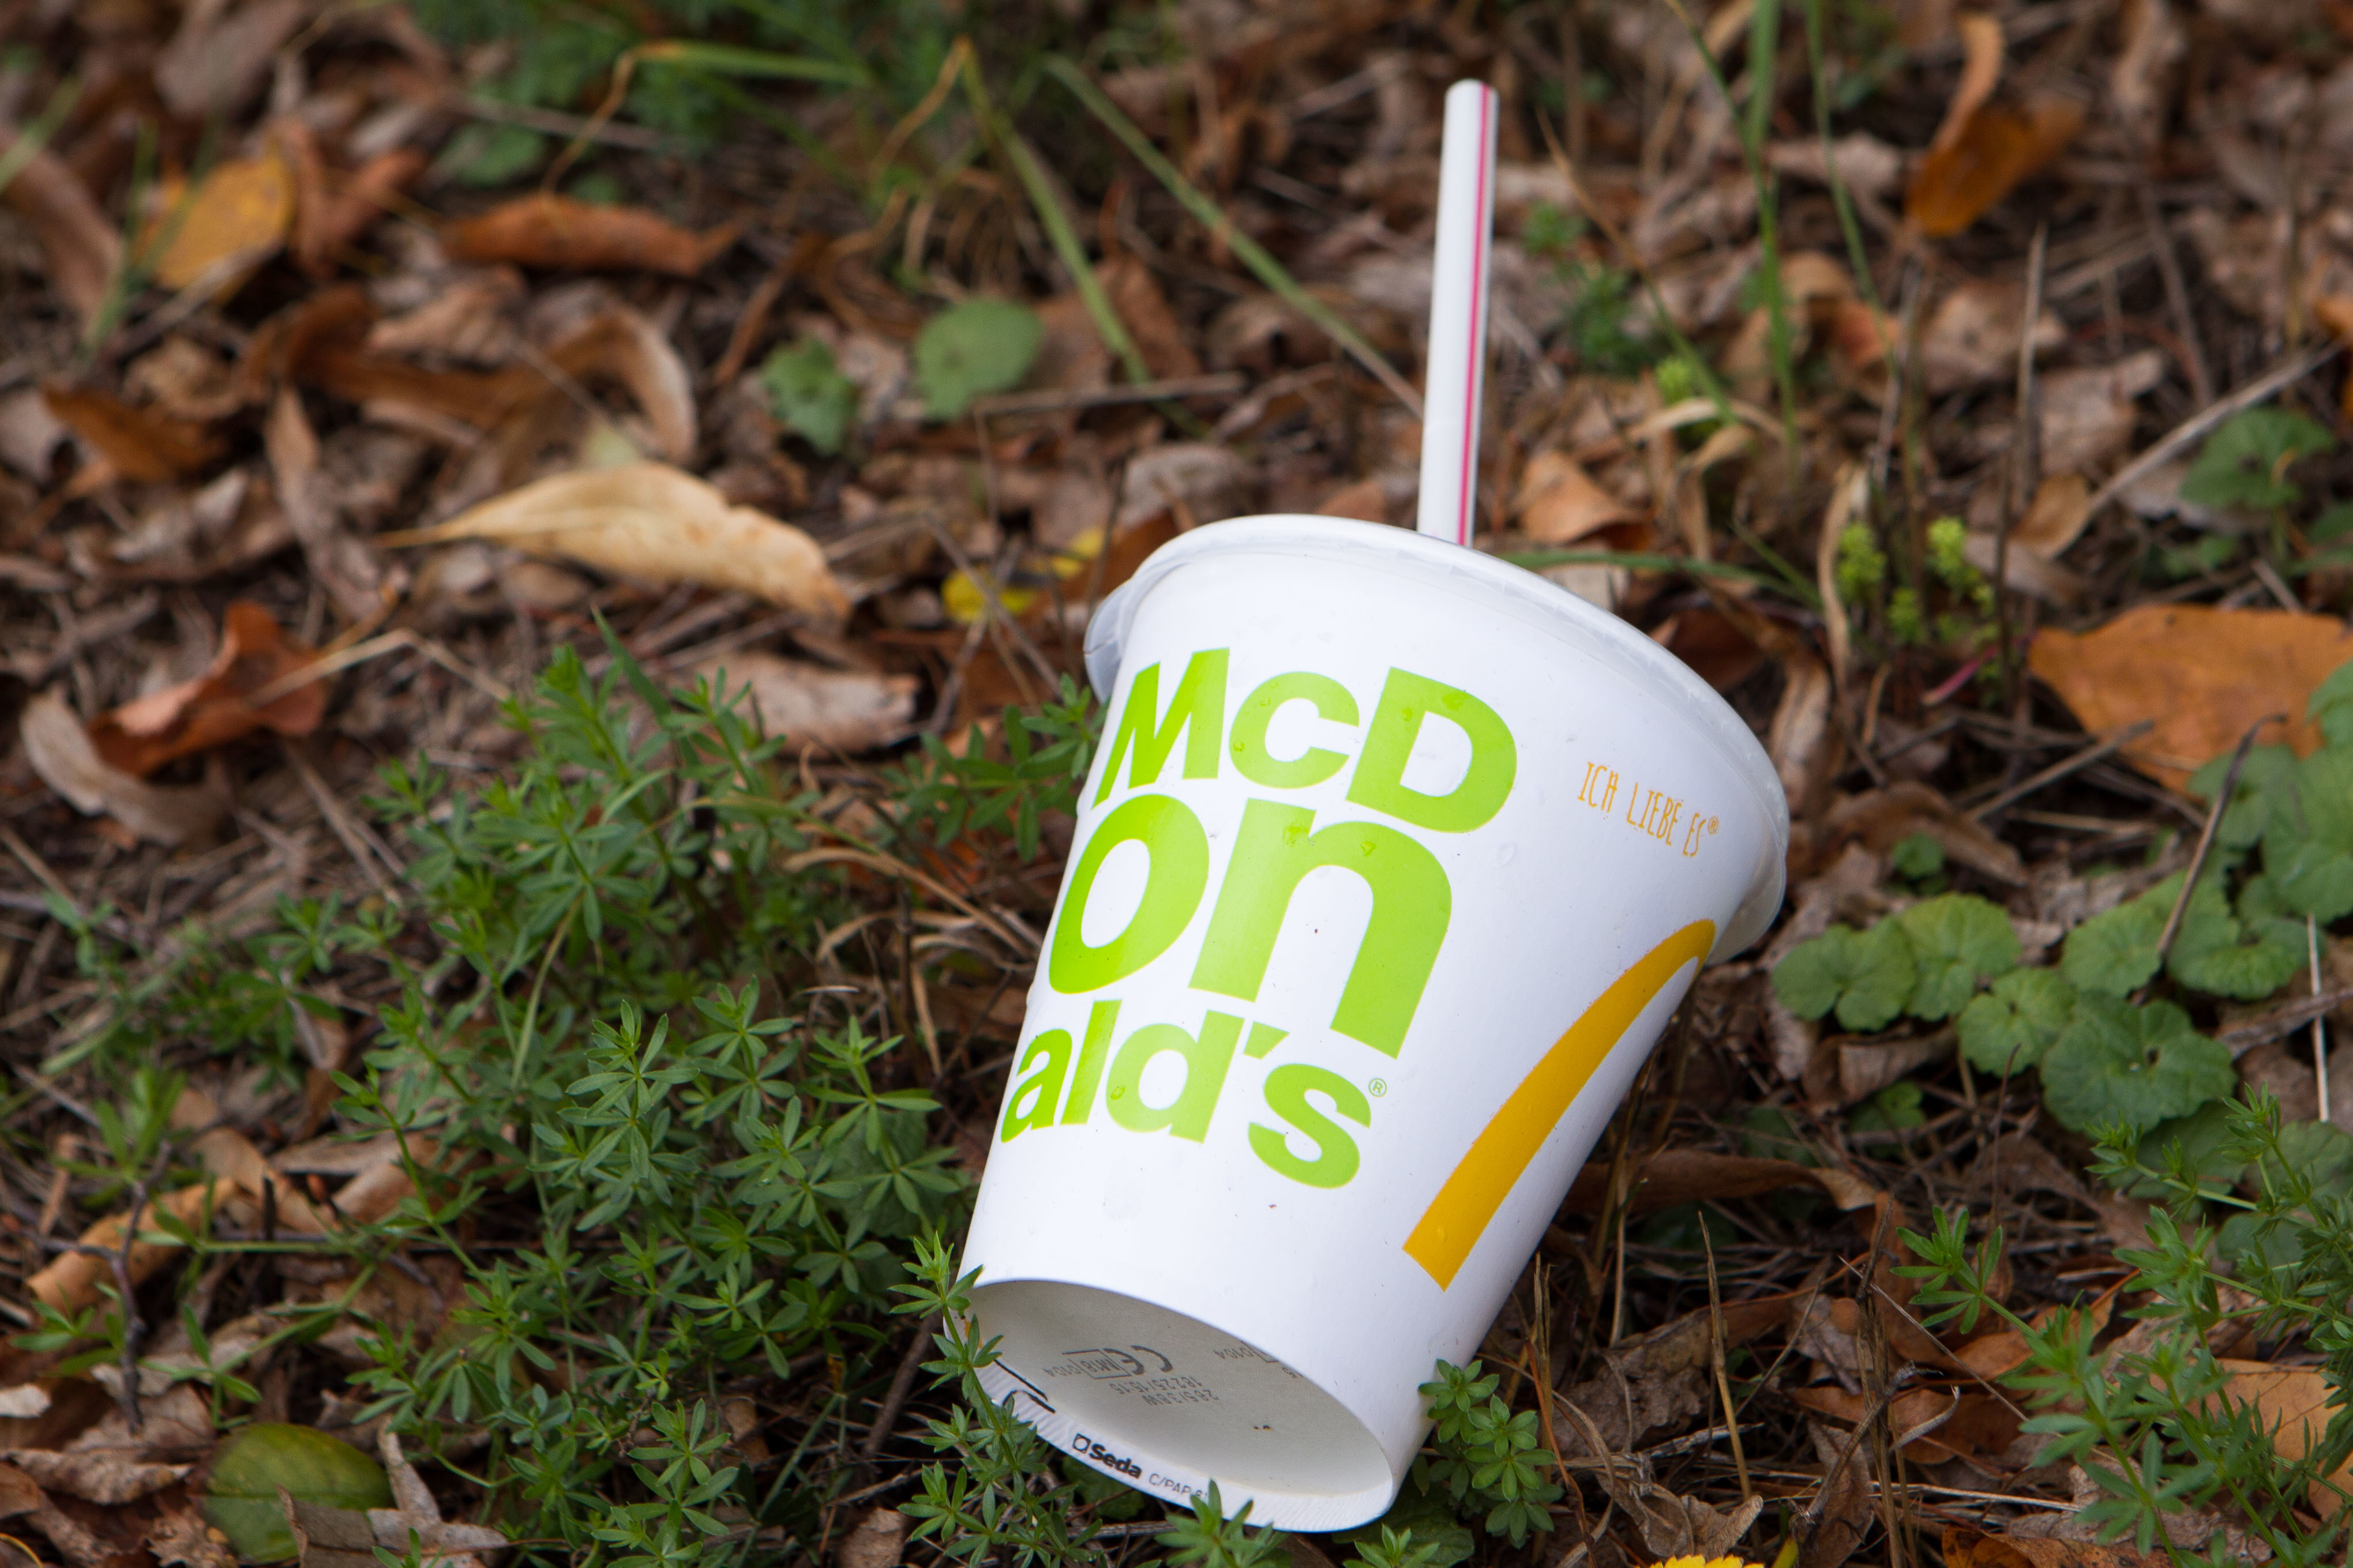 A McDonald's cup and straw. Credit: PA